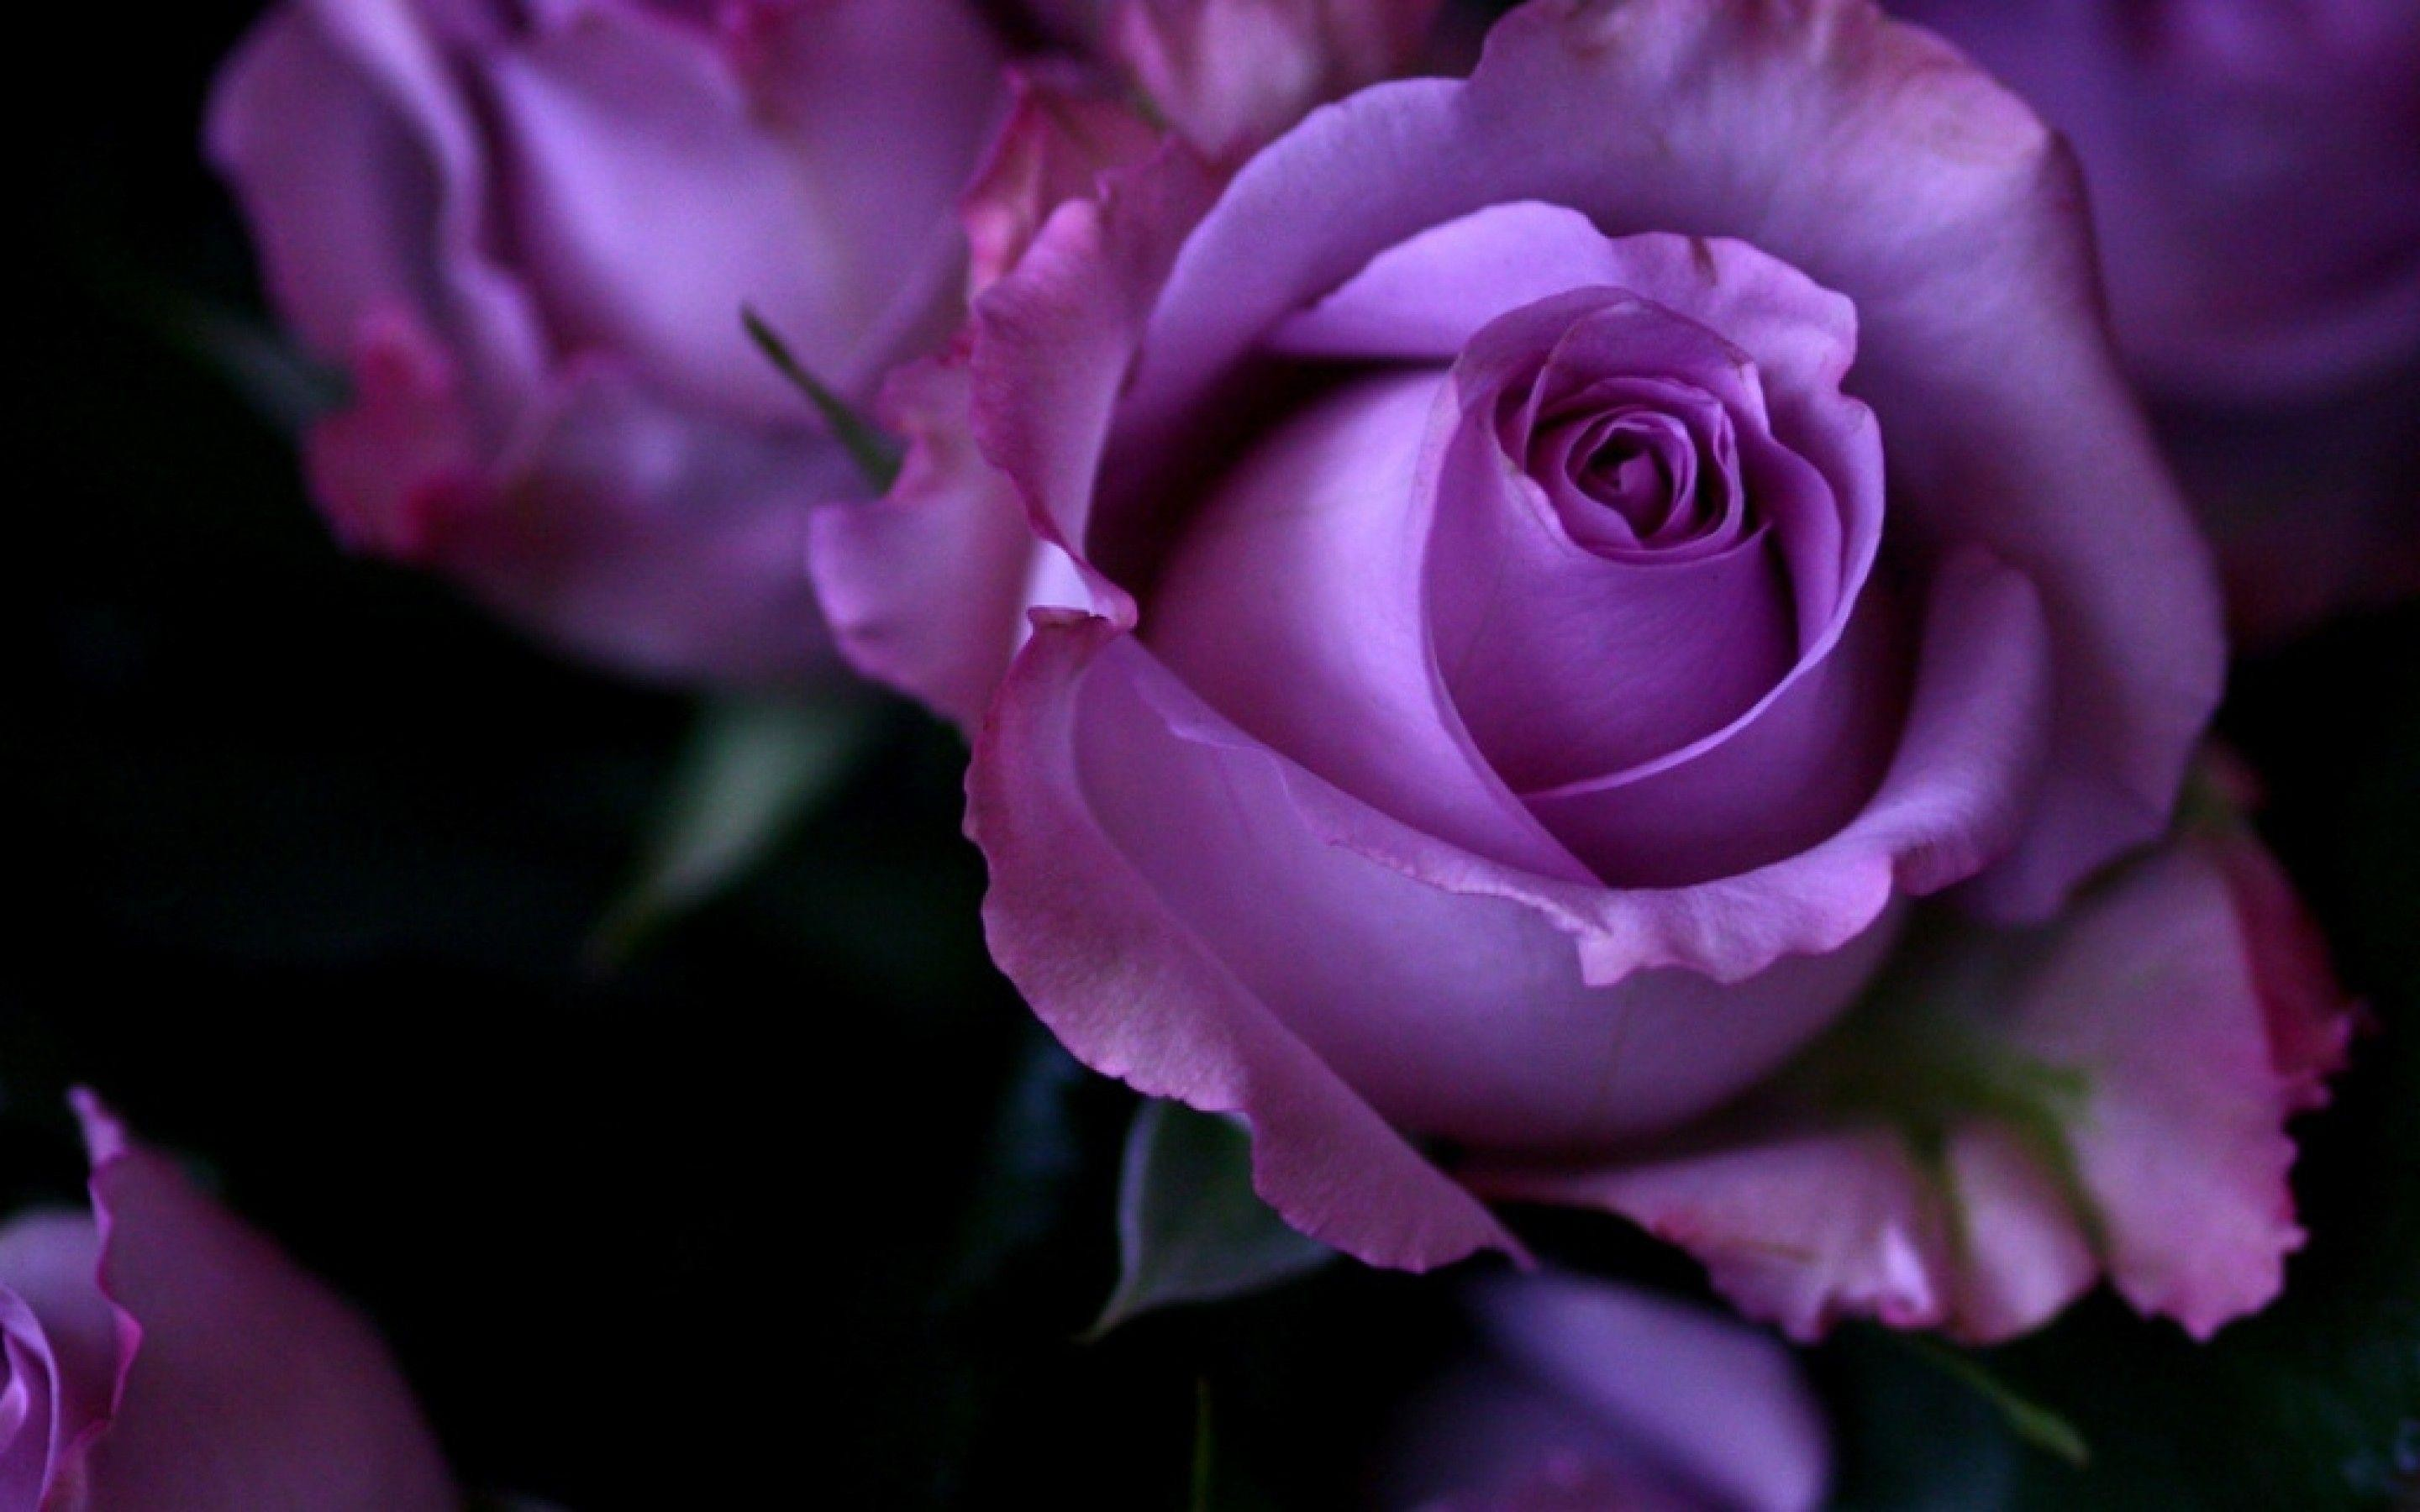 Purple Roses Background Images: Roses Screensaver Wallpaper (45+ Images